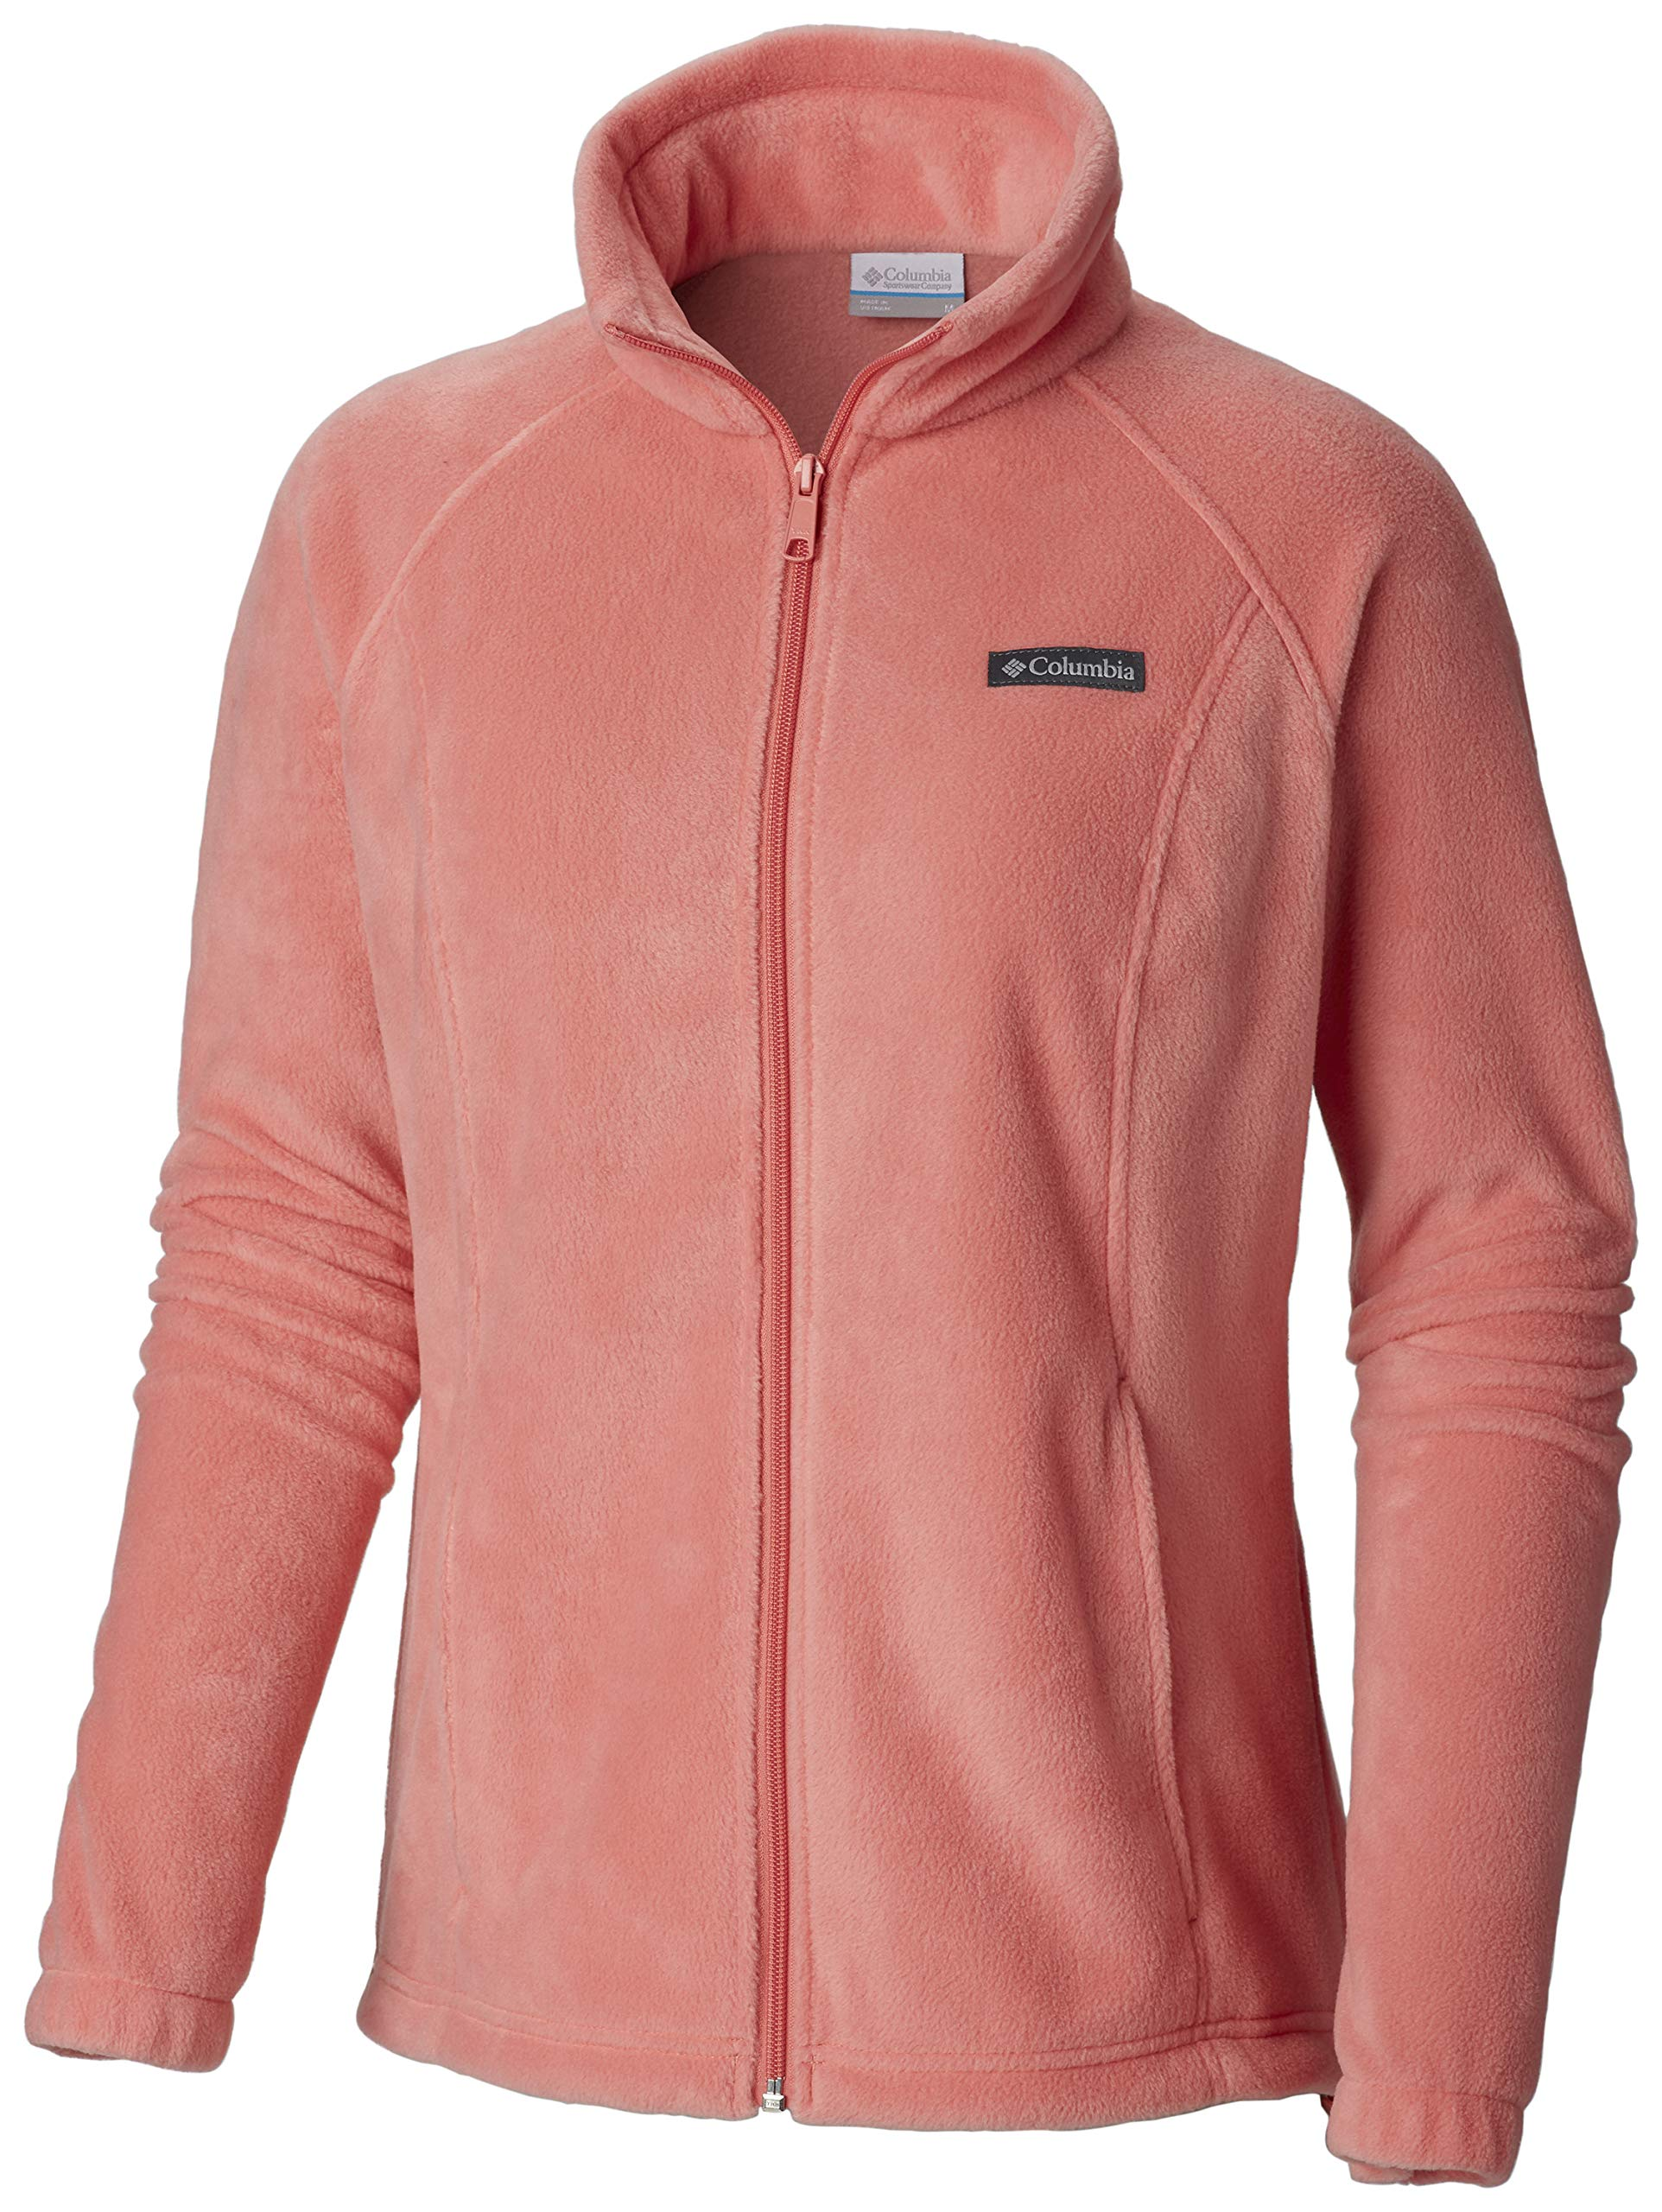 Columbia Women's Benton Springs Classic Fit Full Zip Soft Fleece Jacket, Coral Bloom, Large by Columbia